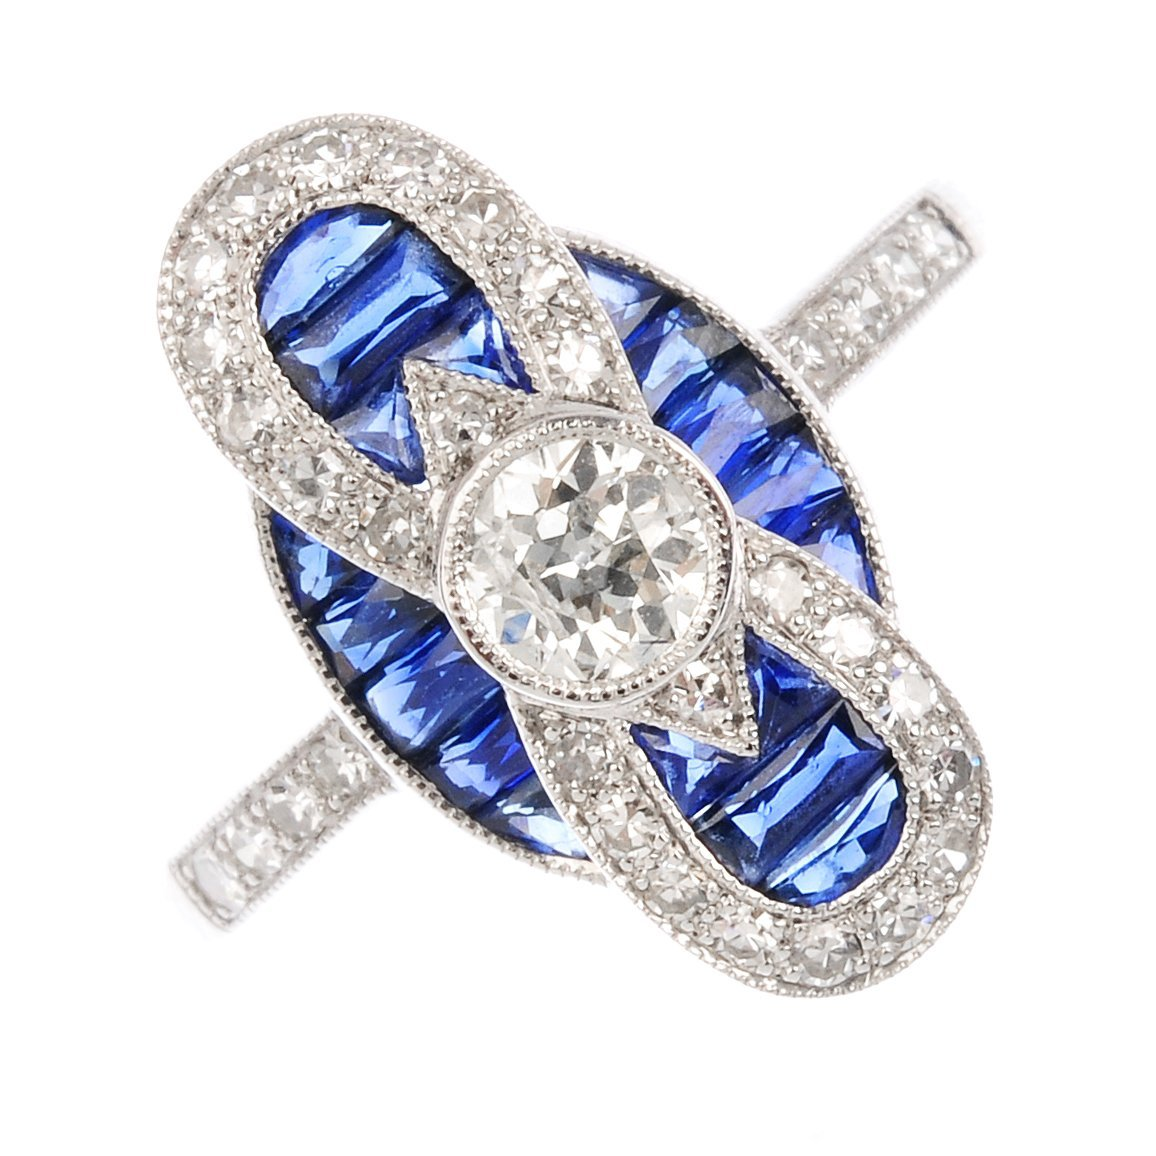 """<a href=""""https://www.fellows.co.uk/2104-lot-89-A-sapphire-and-diamond-dress-ring?utm_source=Ageless%20Heirlooms&utm_medium=blog&utm_campaign=Ageless%20Heirlooms%20Vintage&utm_content=Blog%20and%20social"""">LOT 89</a>"""